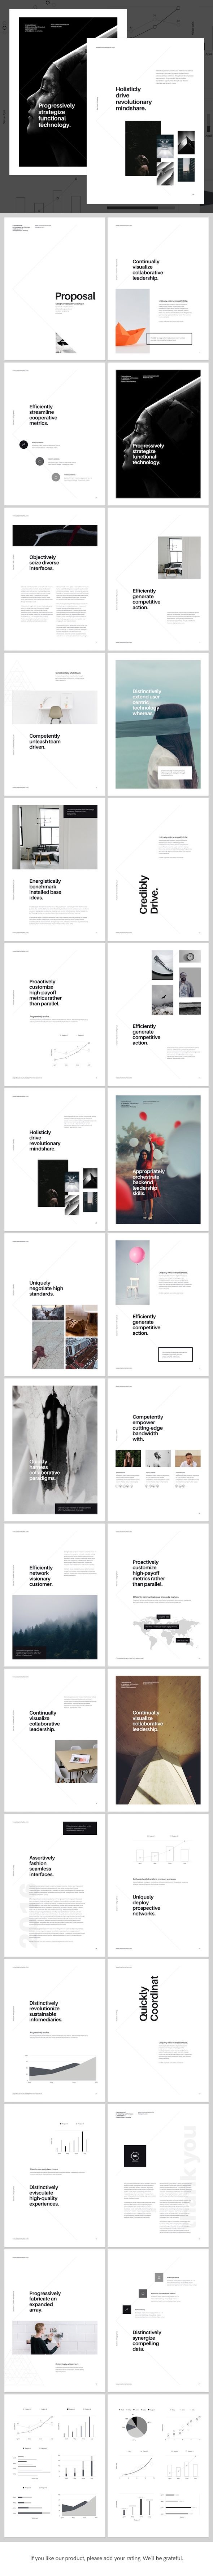 A4 Keynote Presentation for Print - Creative Keynote Templates